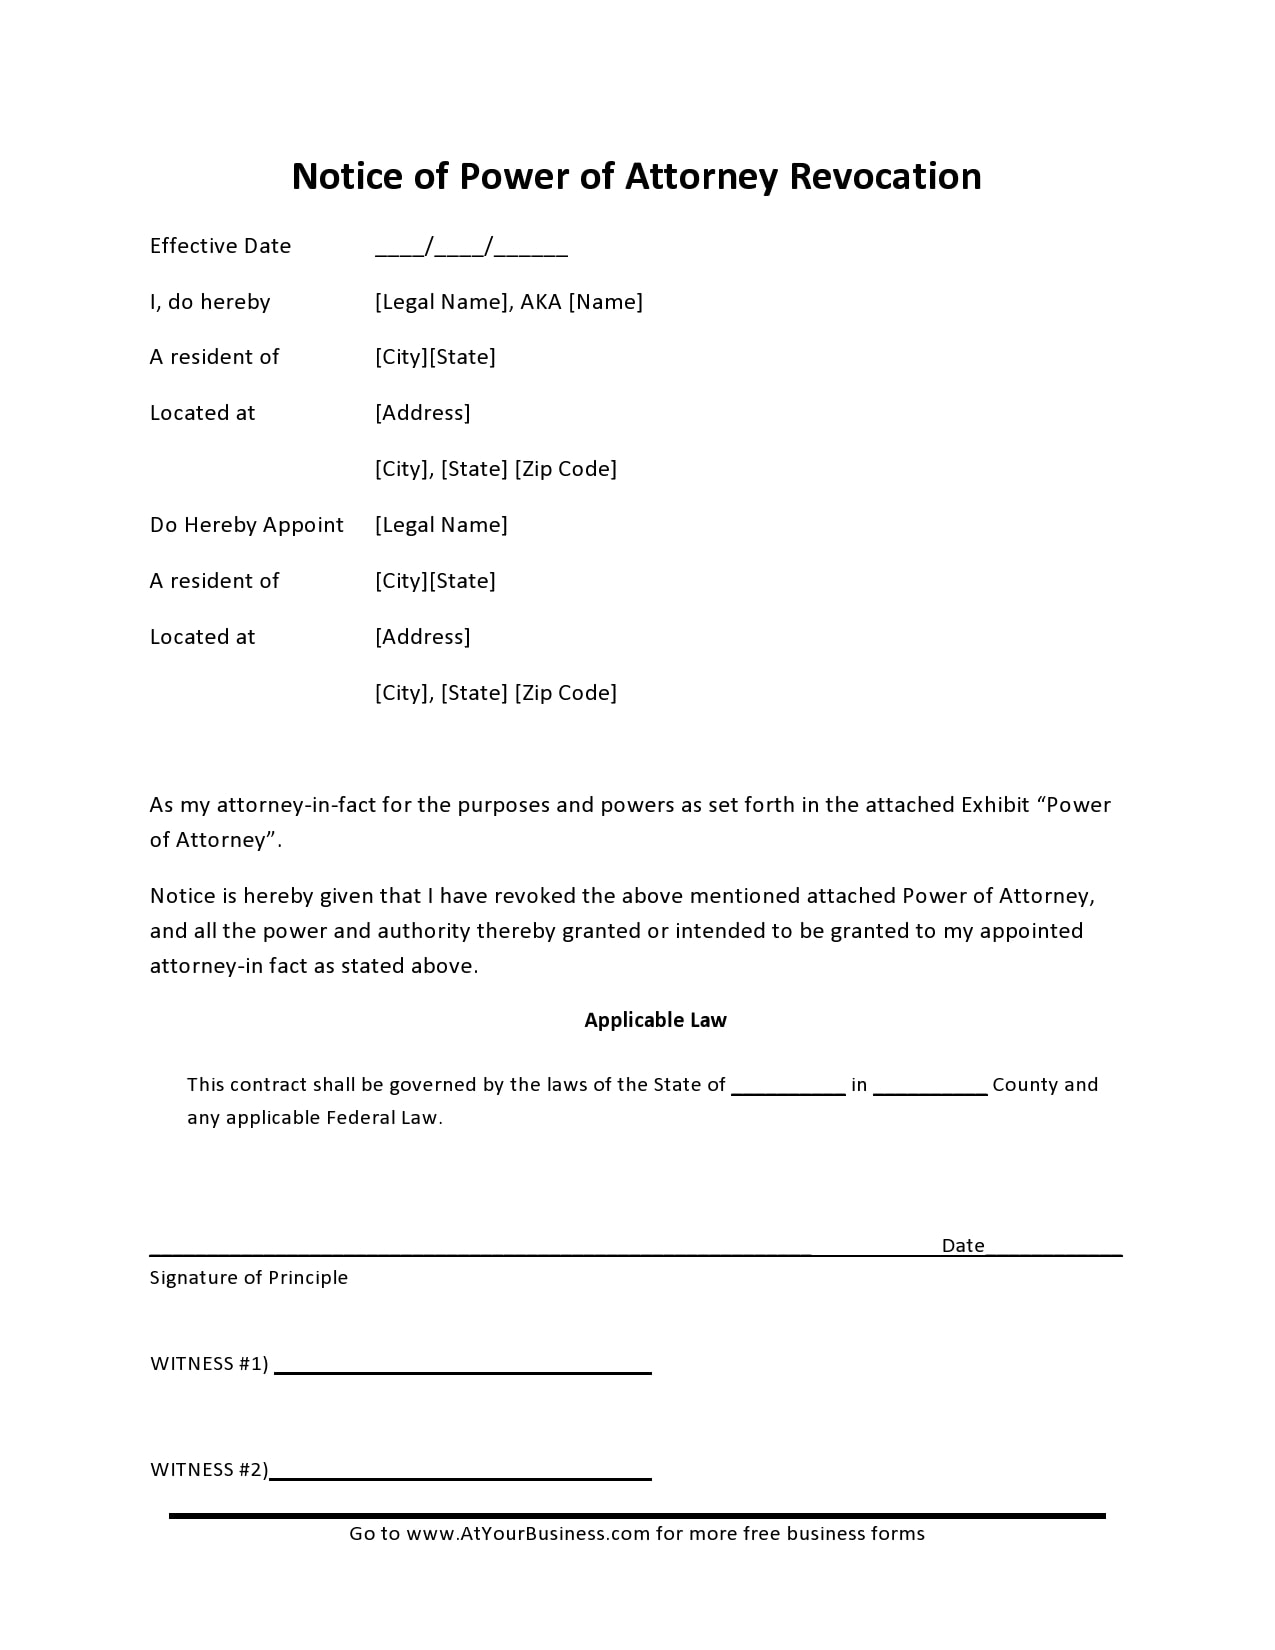 power of attorney revocation form 25